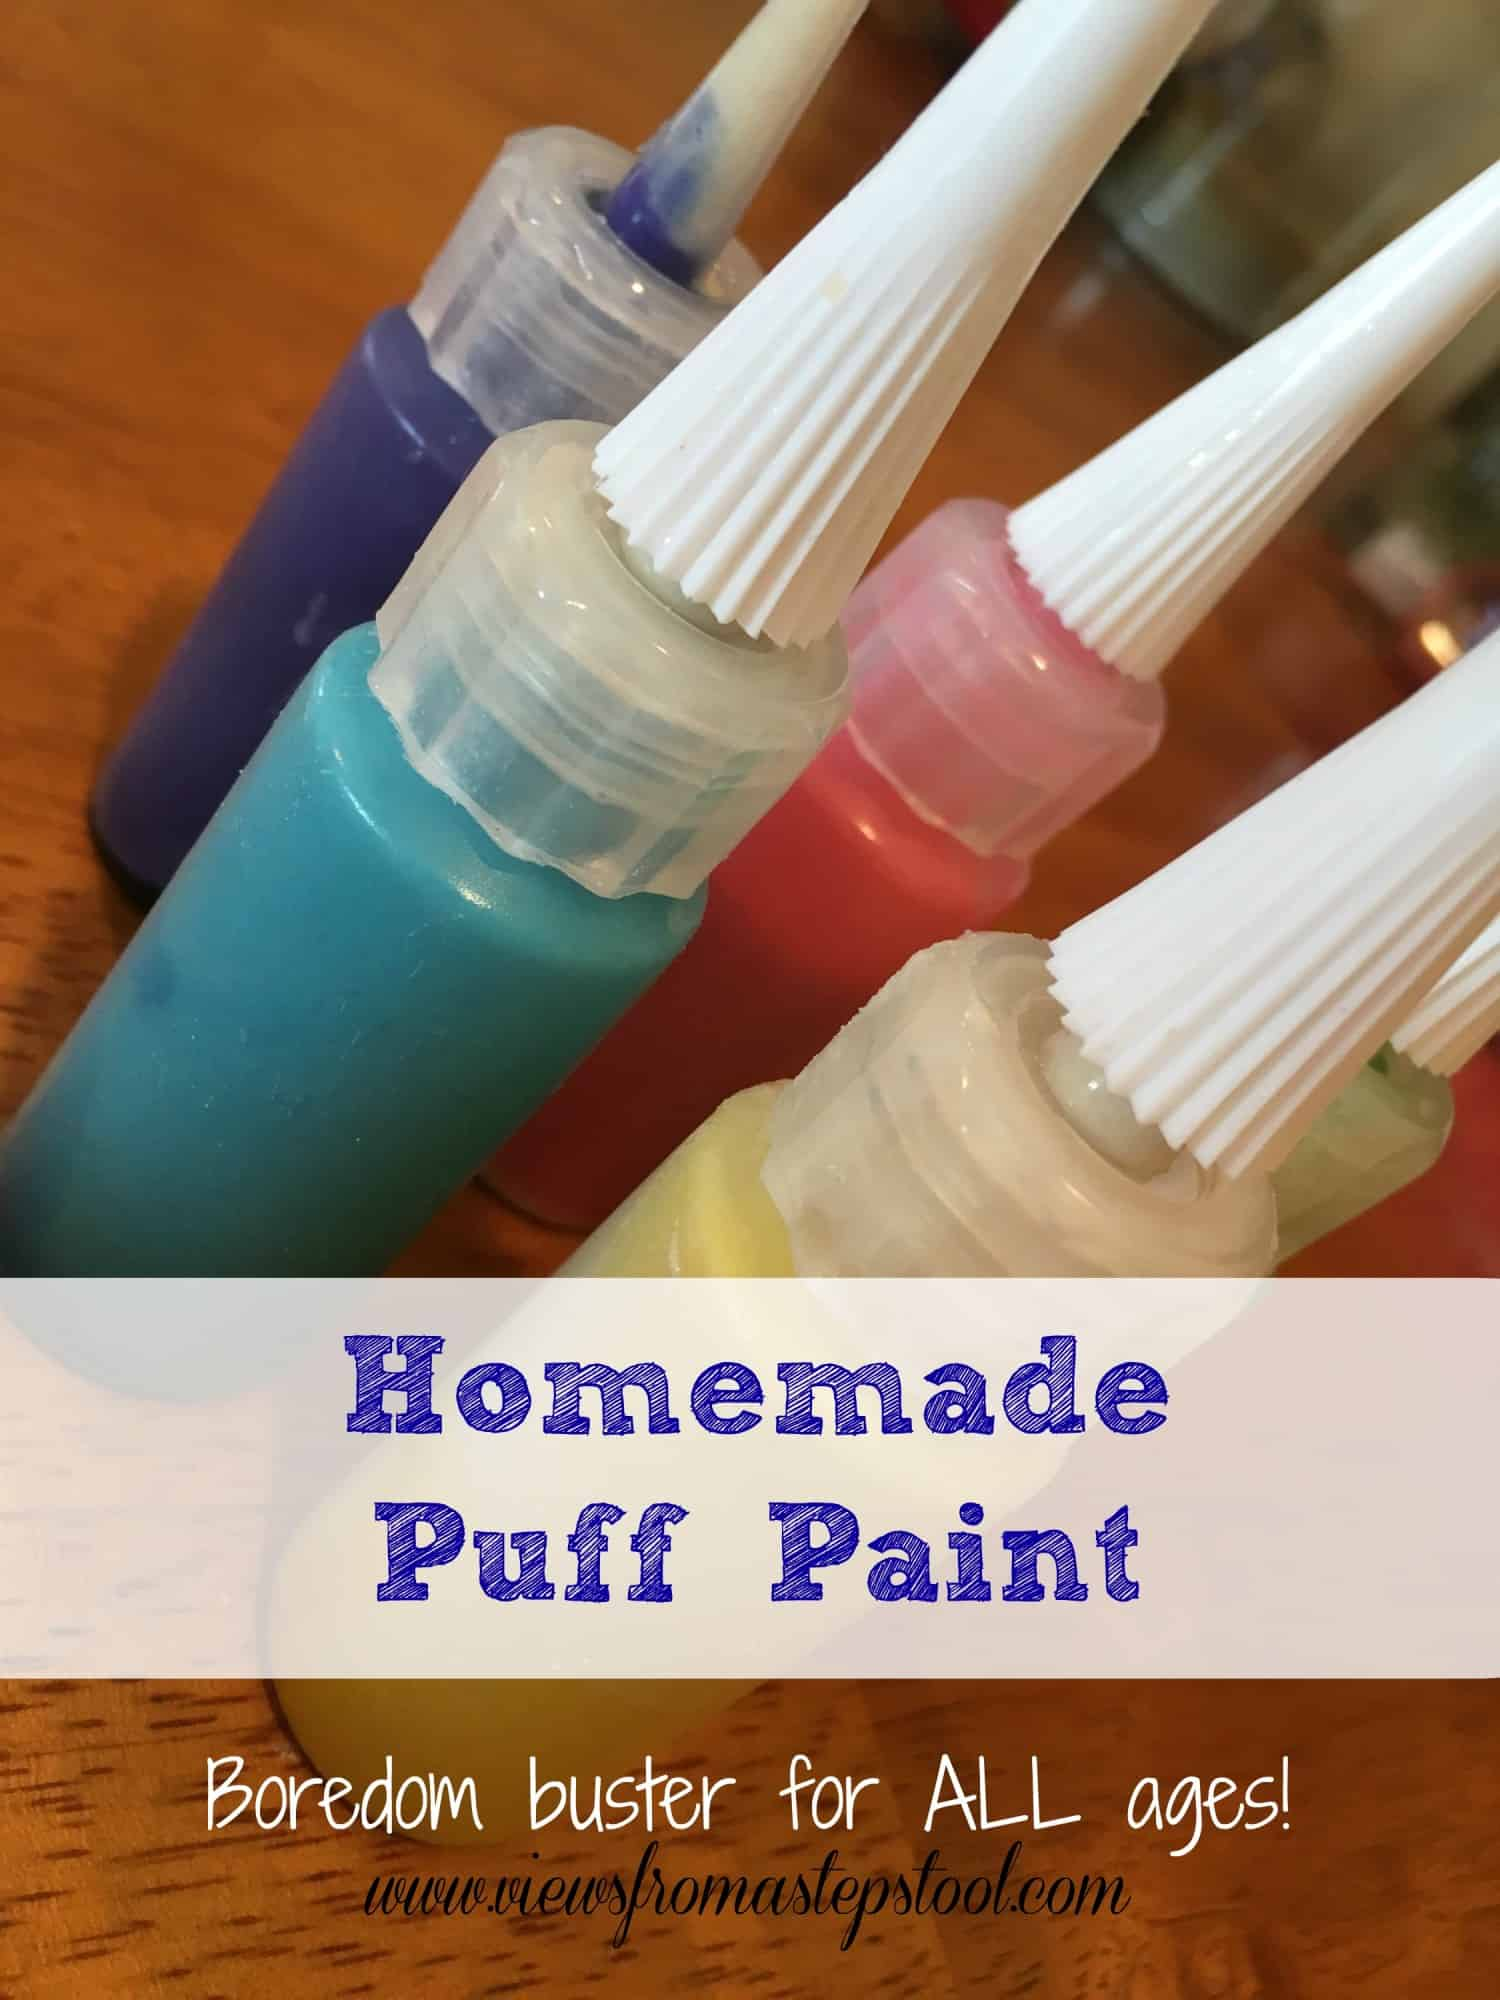 Homemade Puff Paint from Pantry Items